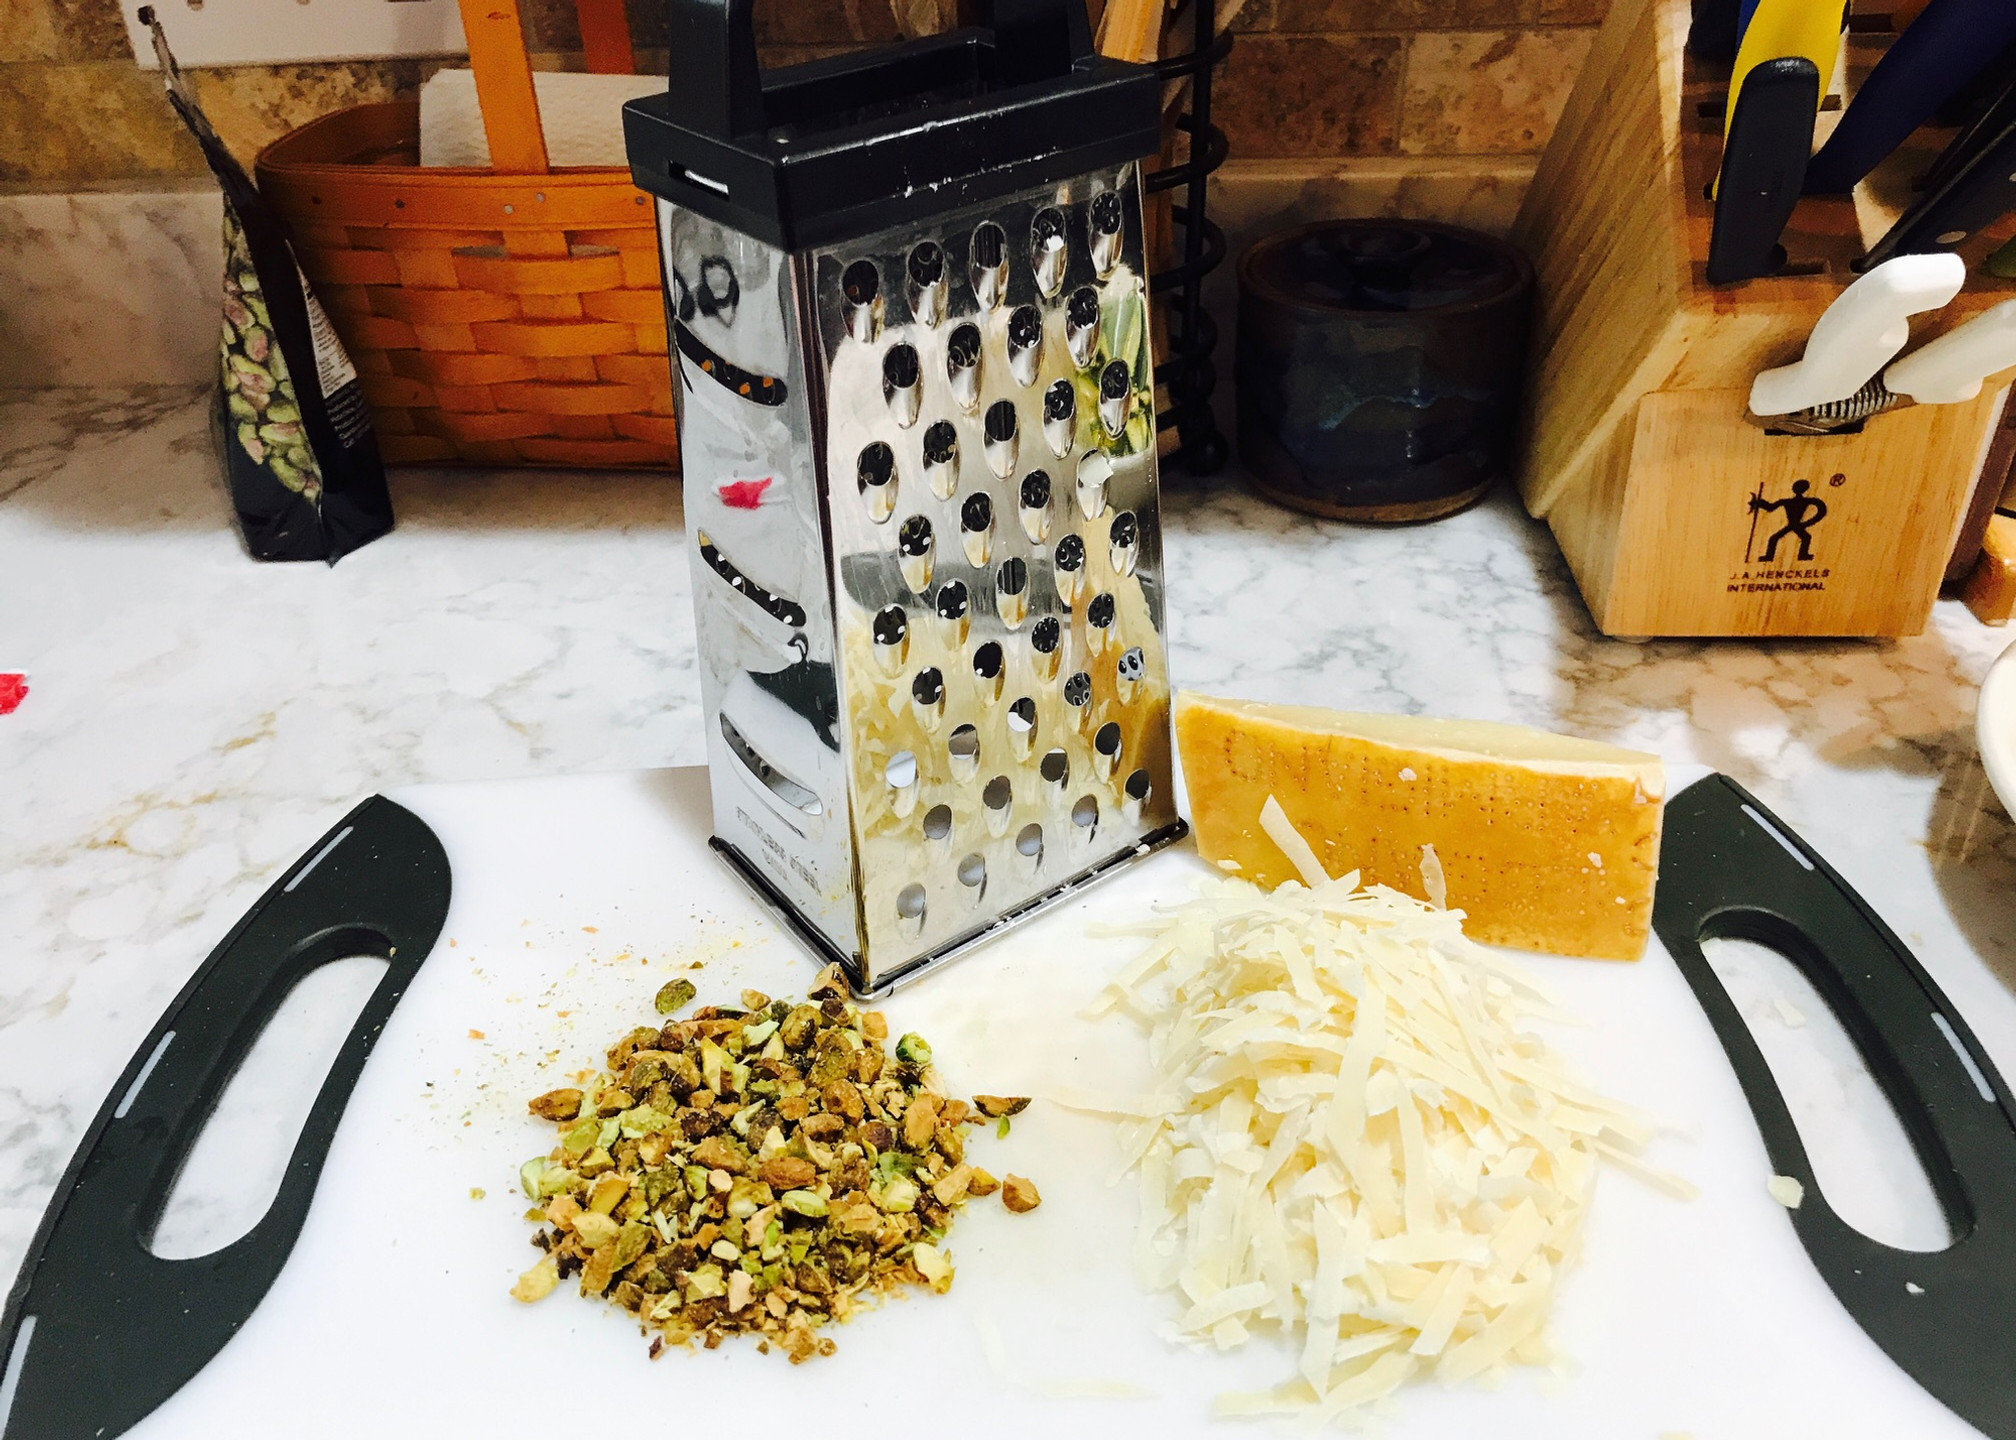 Cheese and Pistachios